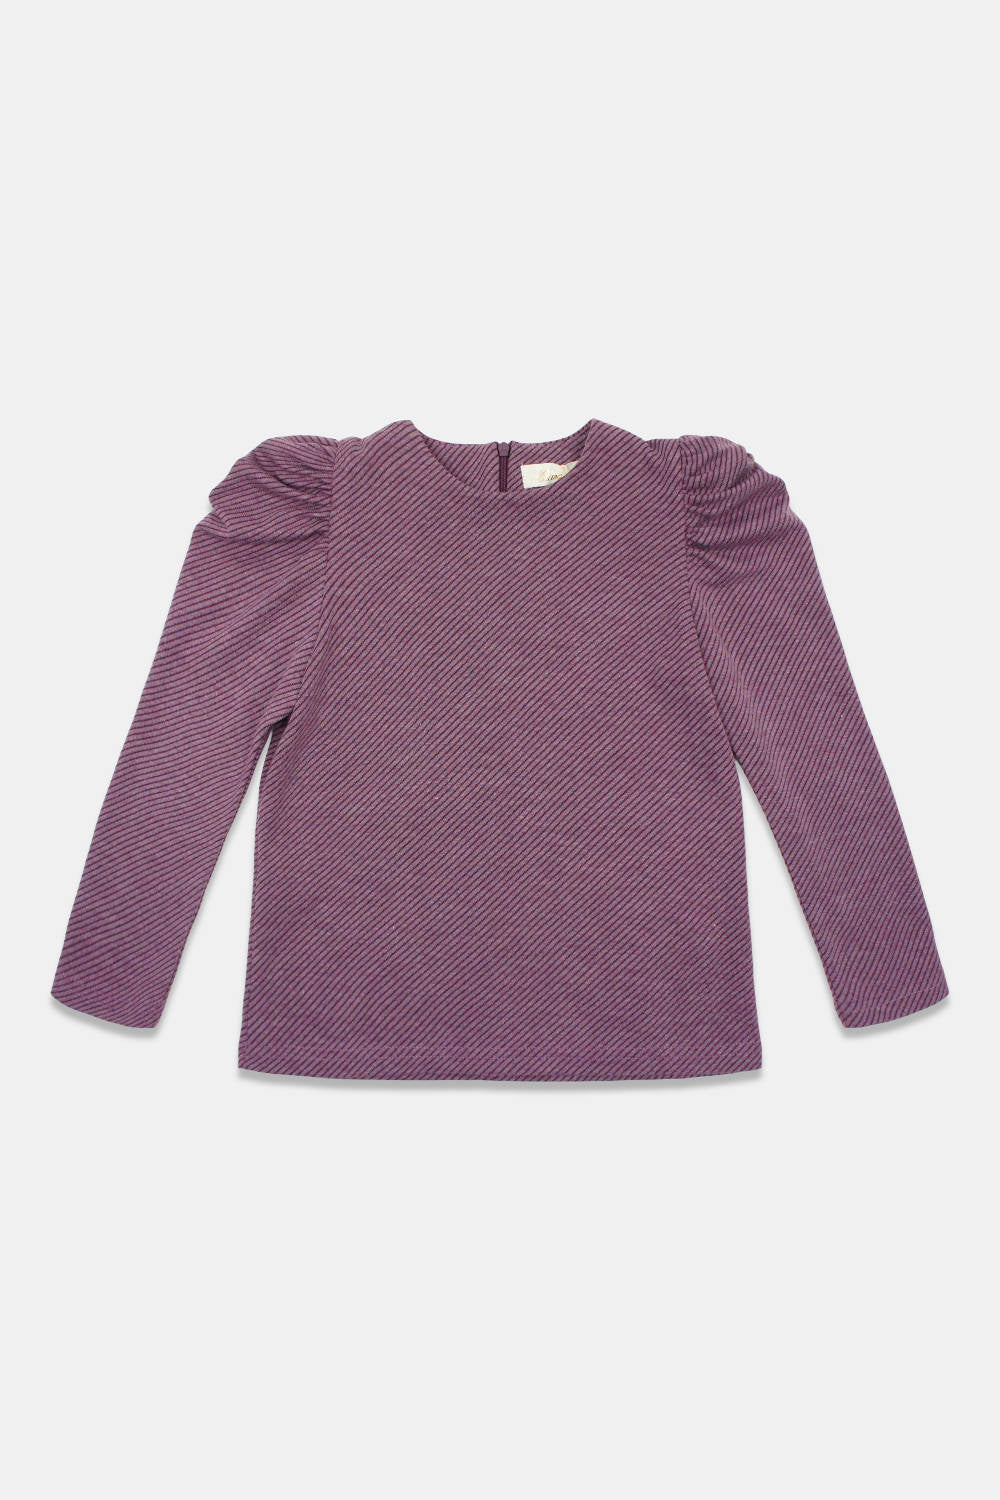 Alitsa Mauve Puff Sleeve Top